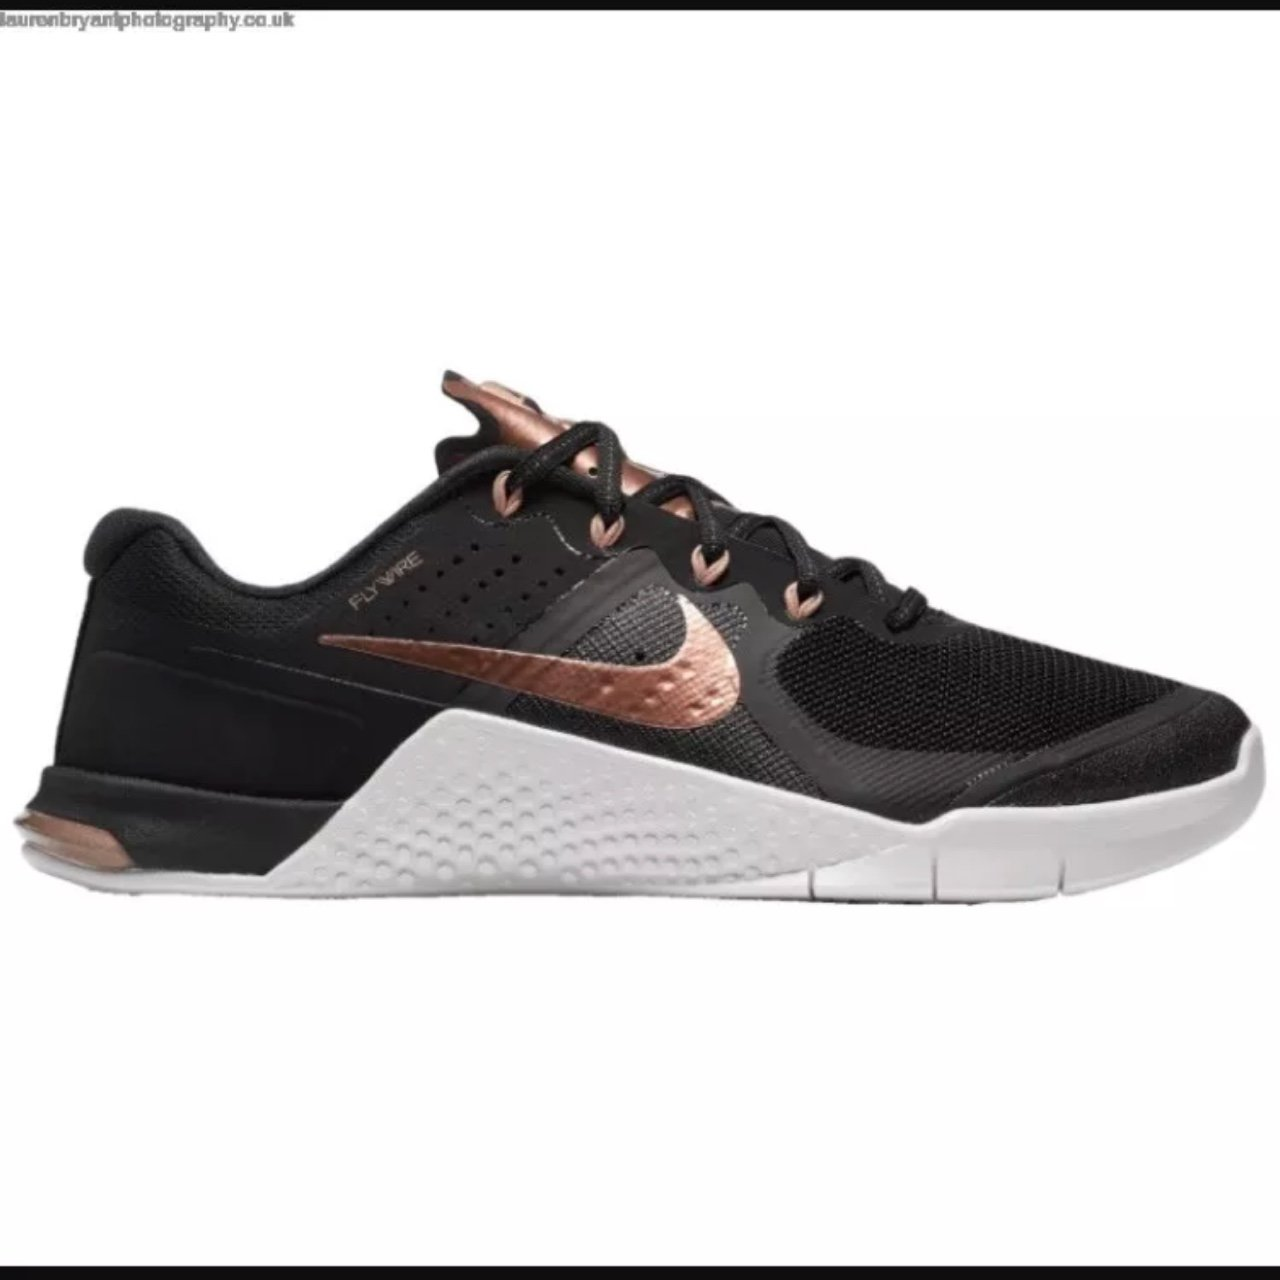 876f8f2c87bc Women s Nike Metcon 2 rose gold trainers Size 6 With box and - Depop